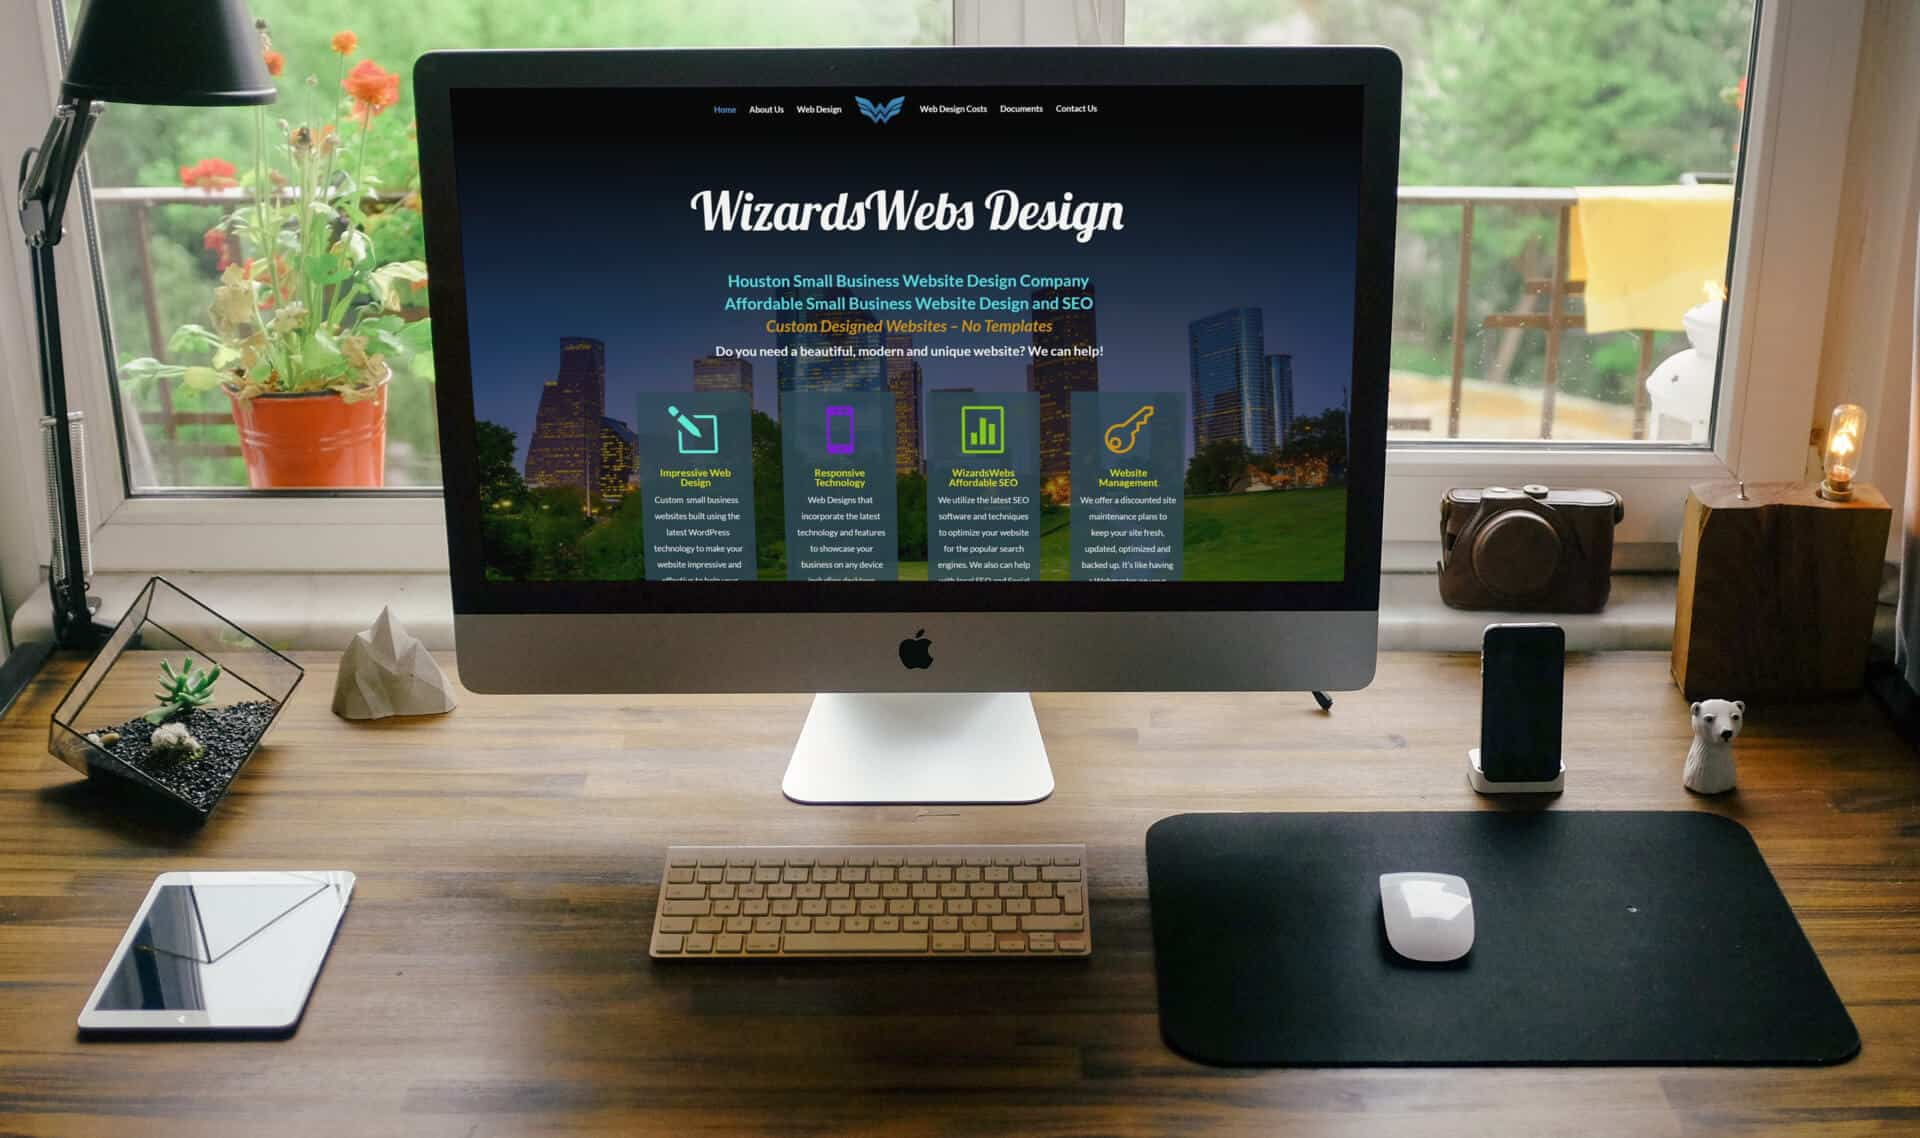 Website Design Costs & Getting Started - WizardsWebs Design Houston